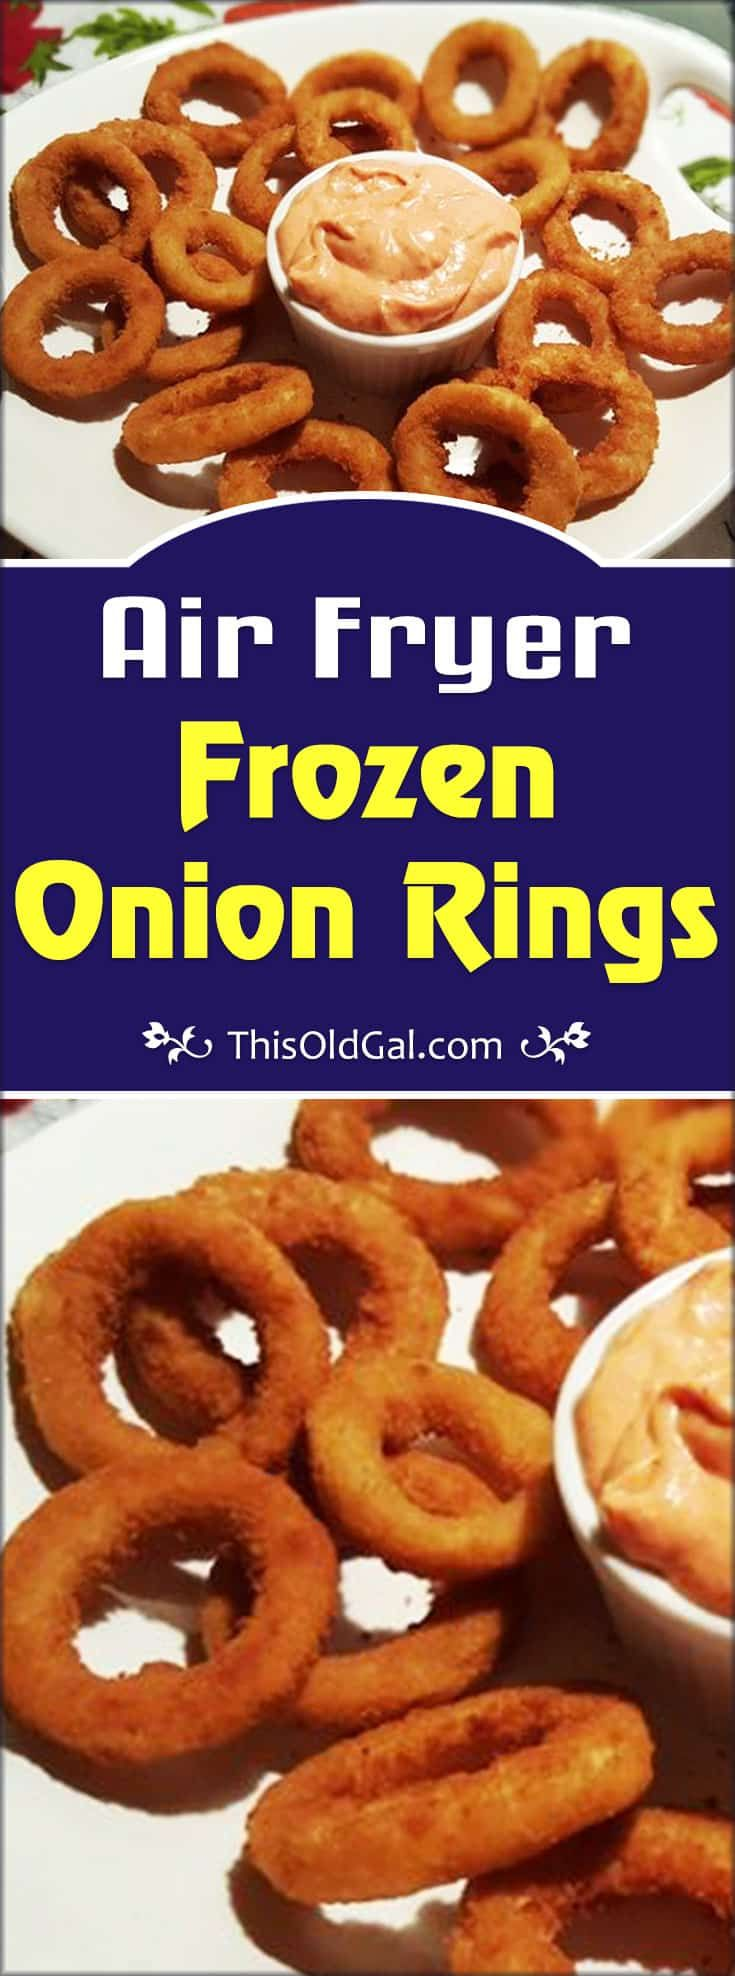 Preparing Air Fryer Frozen Onion Rings is a great way to get used to your new Air Fryer.  In just a few minutes, you can enjoy, hot and crisp Onion Rings.